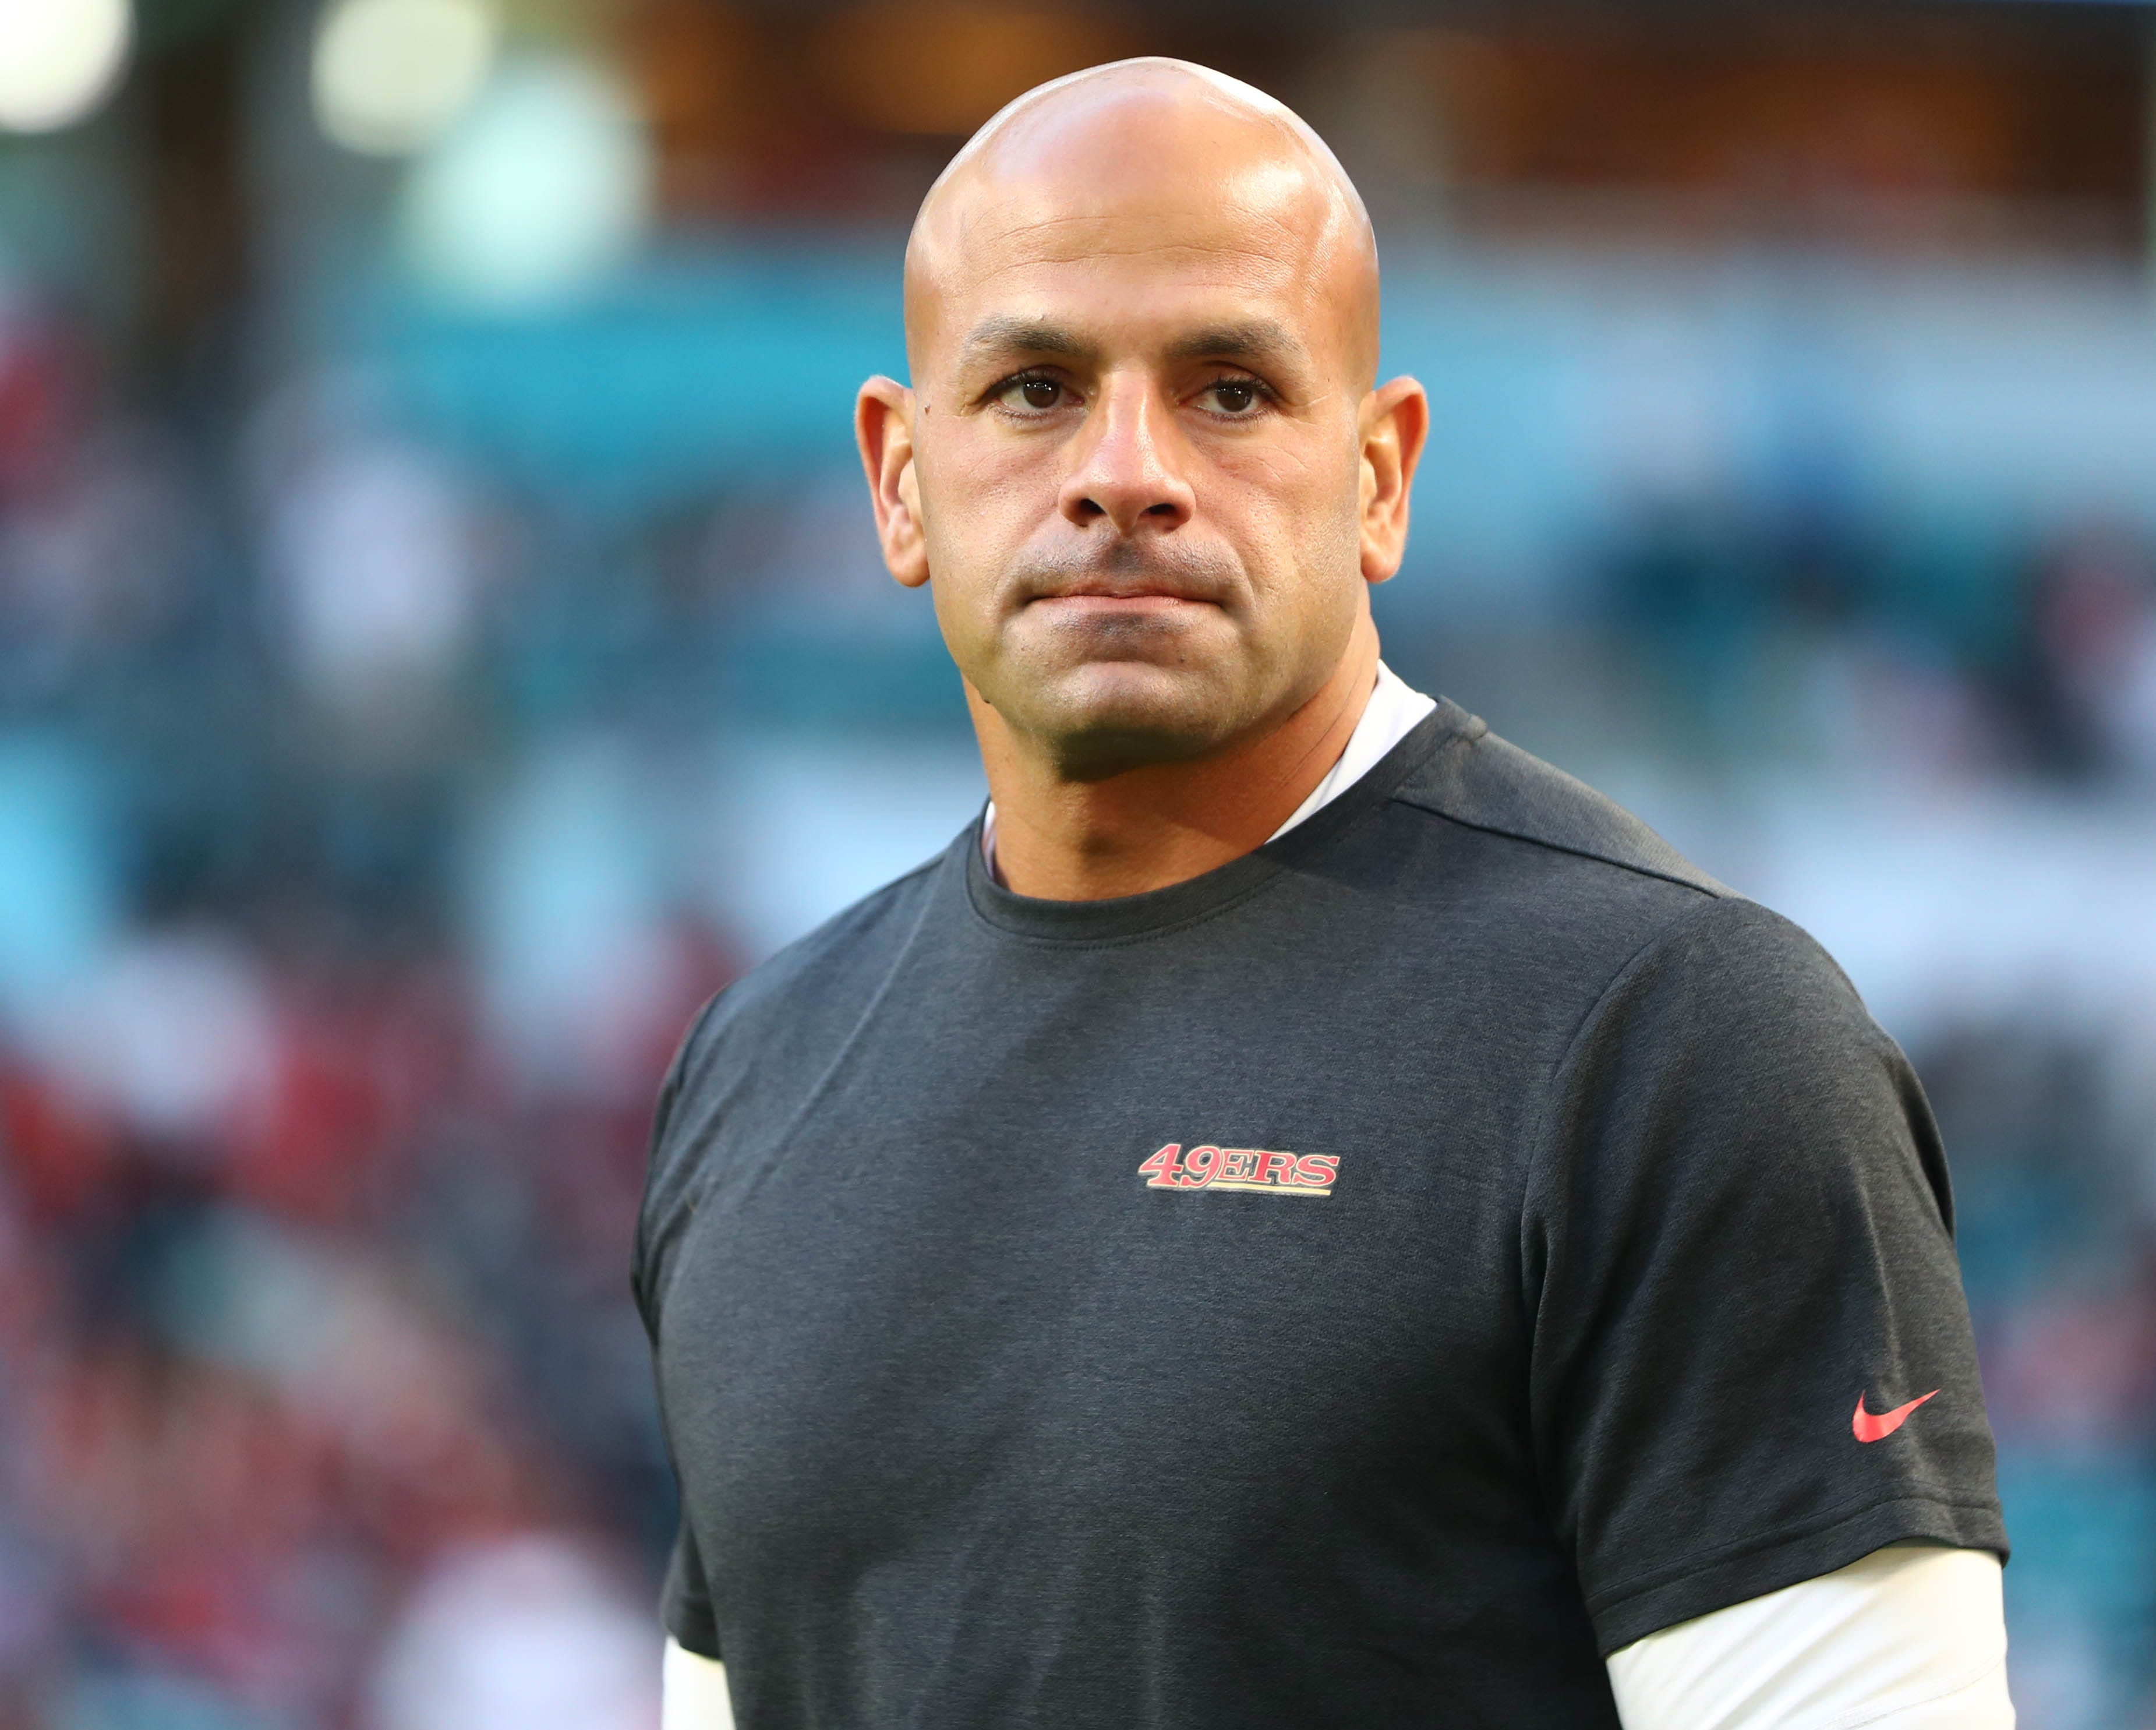 Opinion: Why the Robert Saleh hire shows Jets are finally going in the right direction